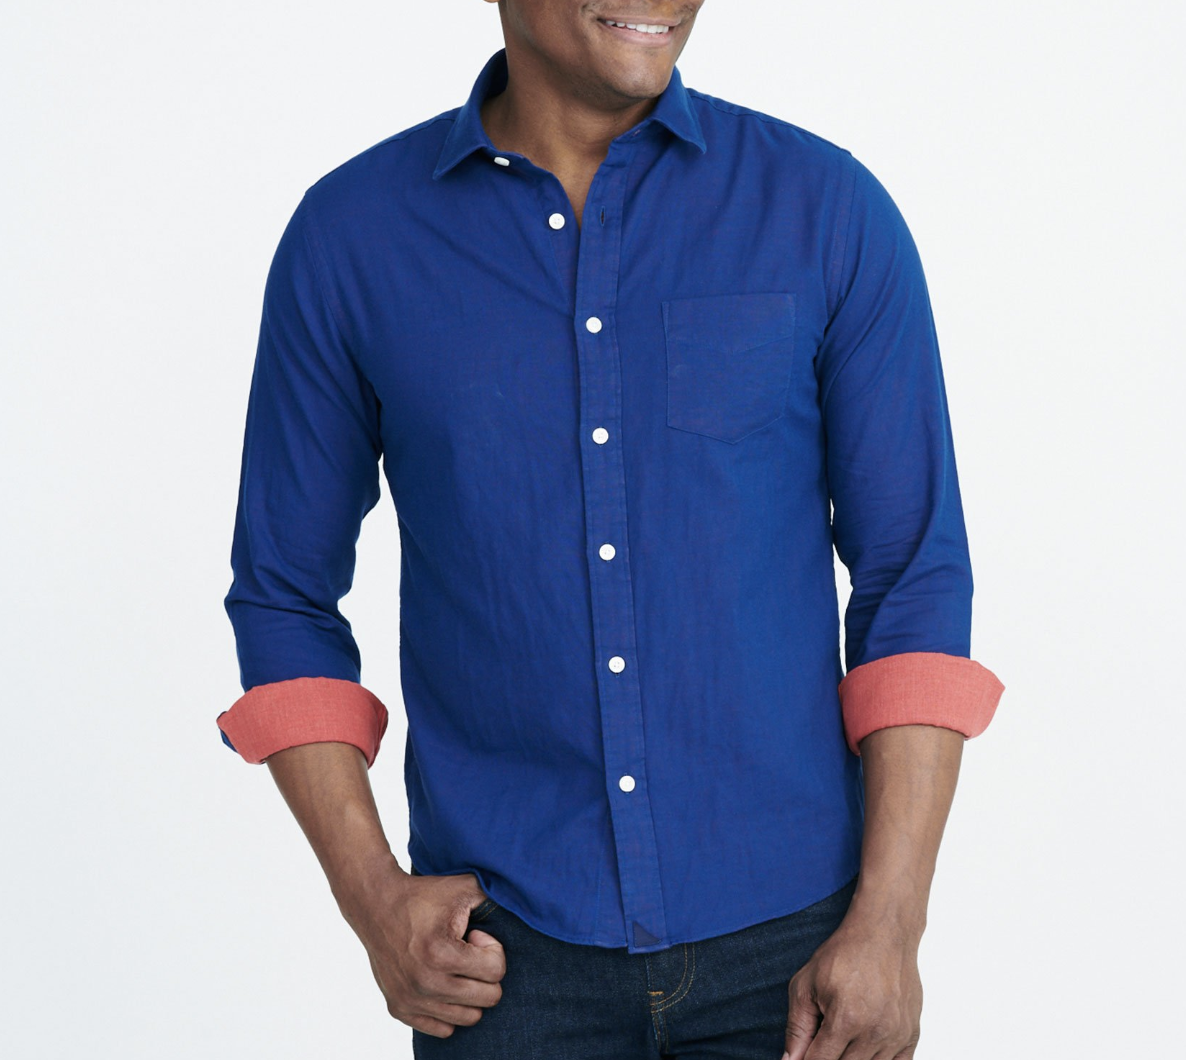 UNTUCKit Navy And Red Men's Shirt